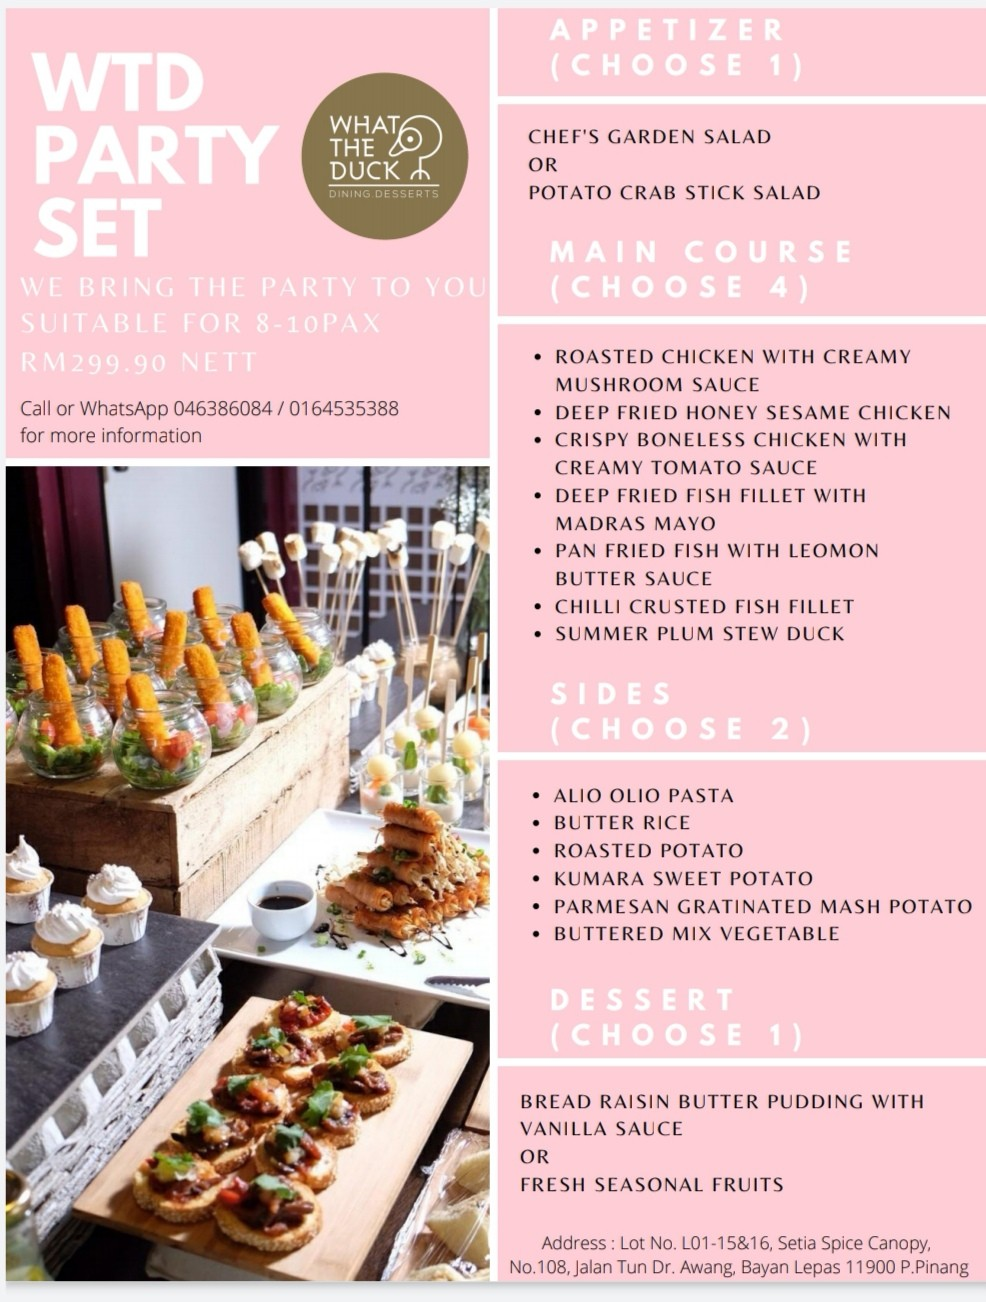 Party Set by What The Duck Restaurant